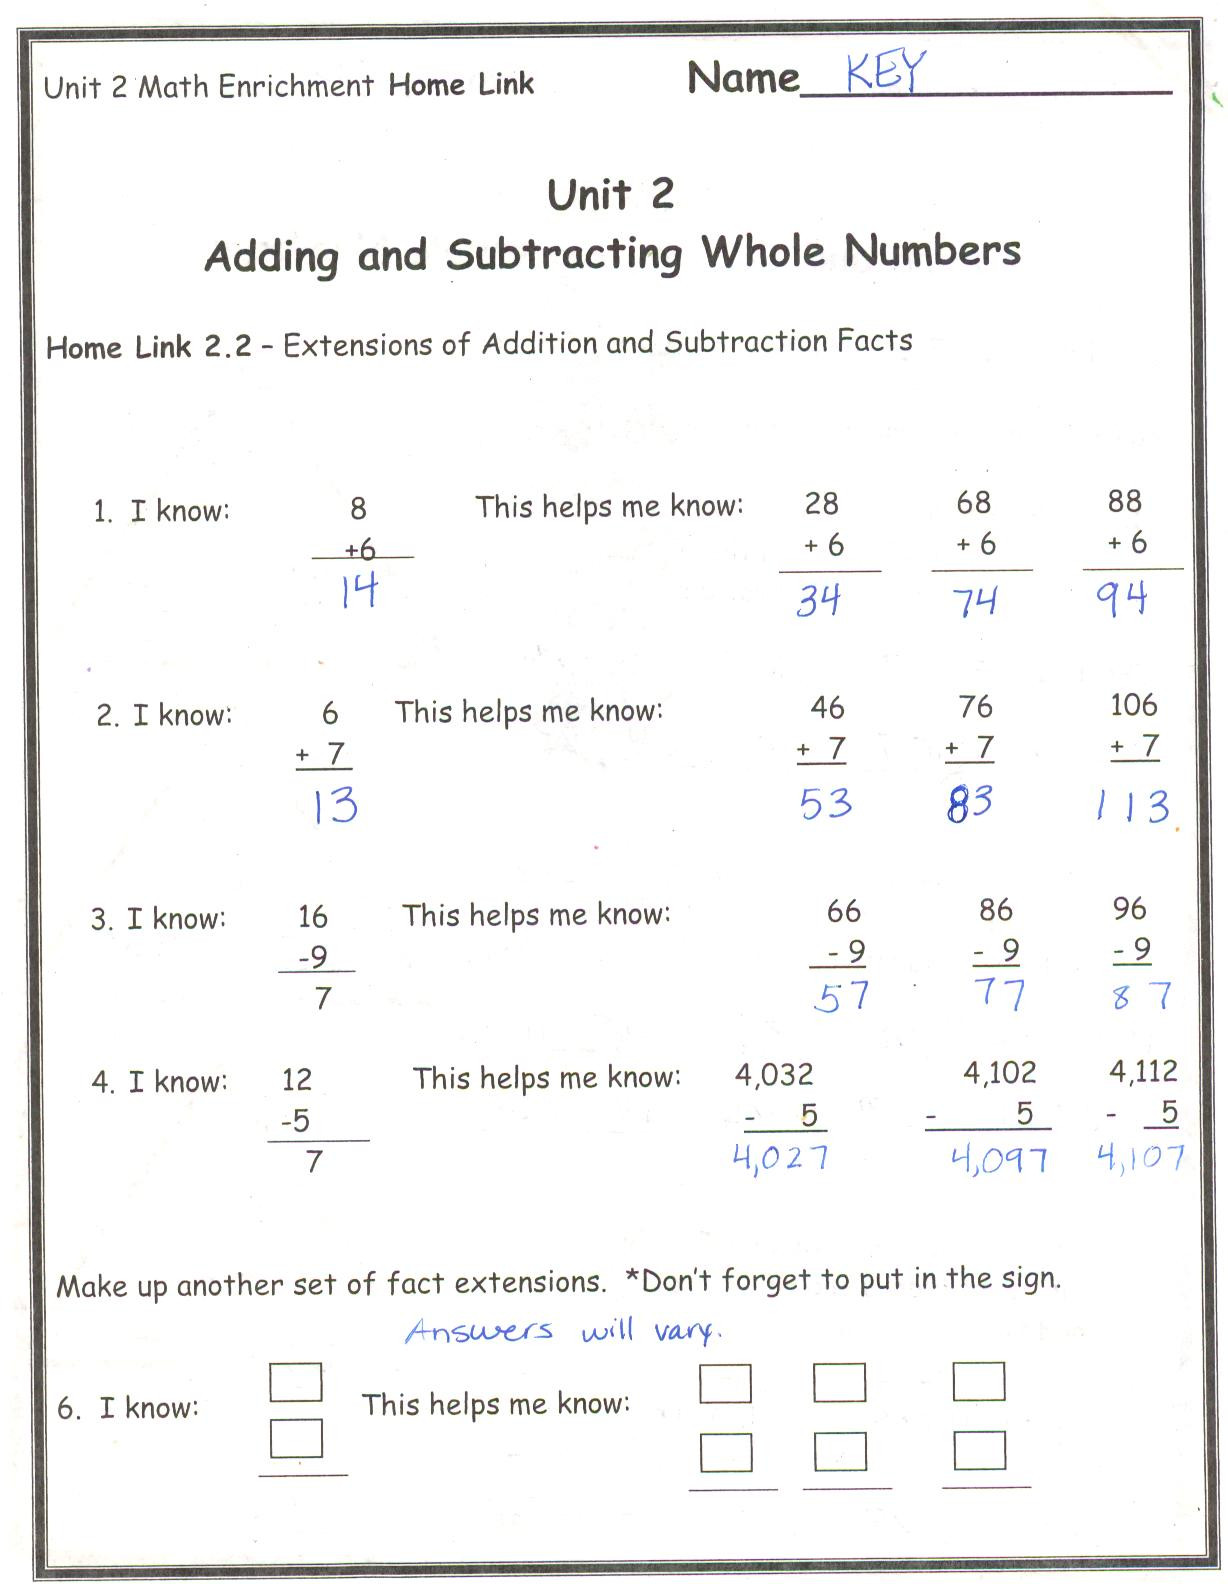 7th Grade Math Enrichment Worksheets Single Quadrant Graph Paper Poetry Practice Worksheets